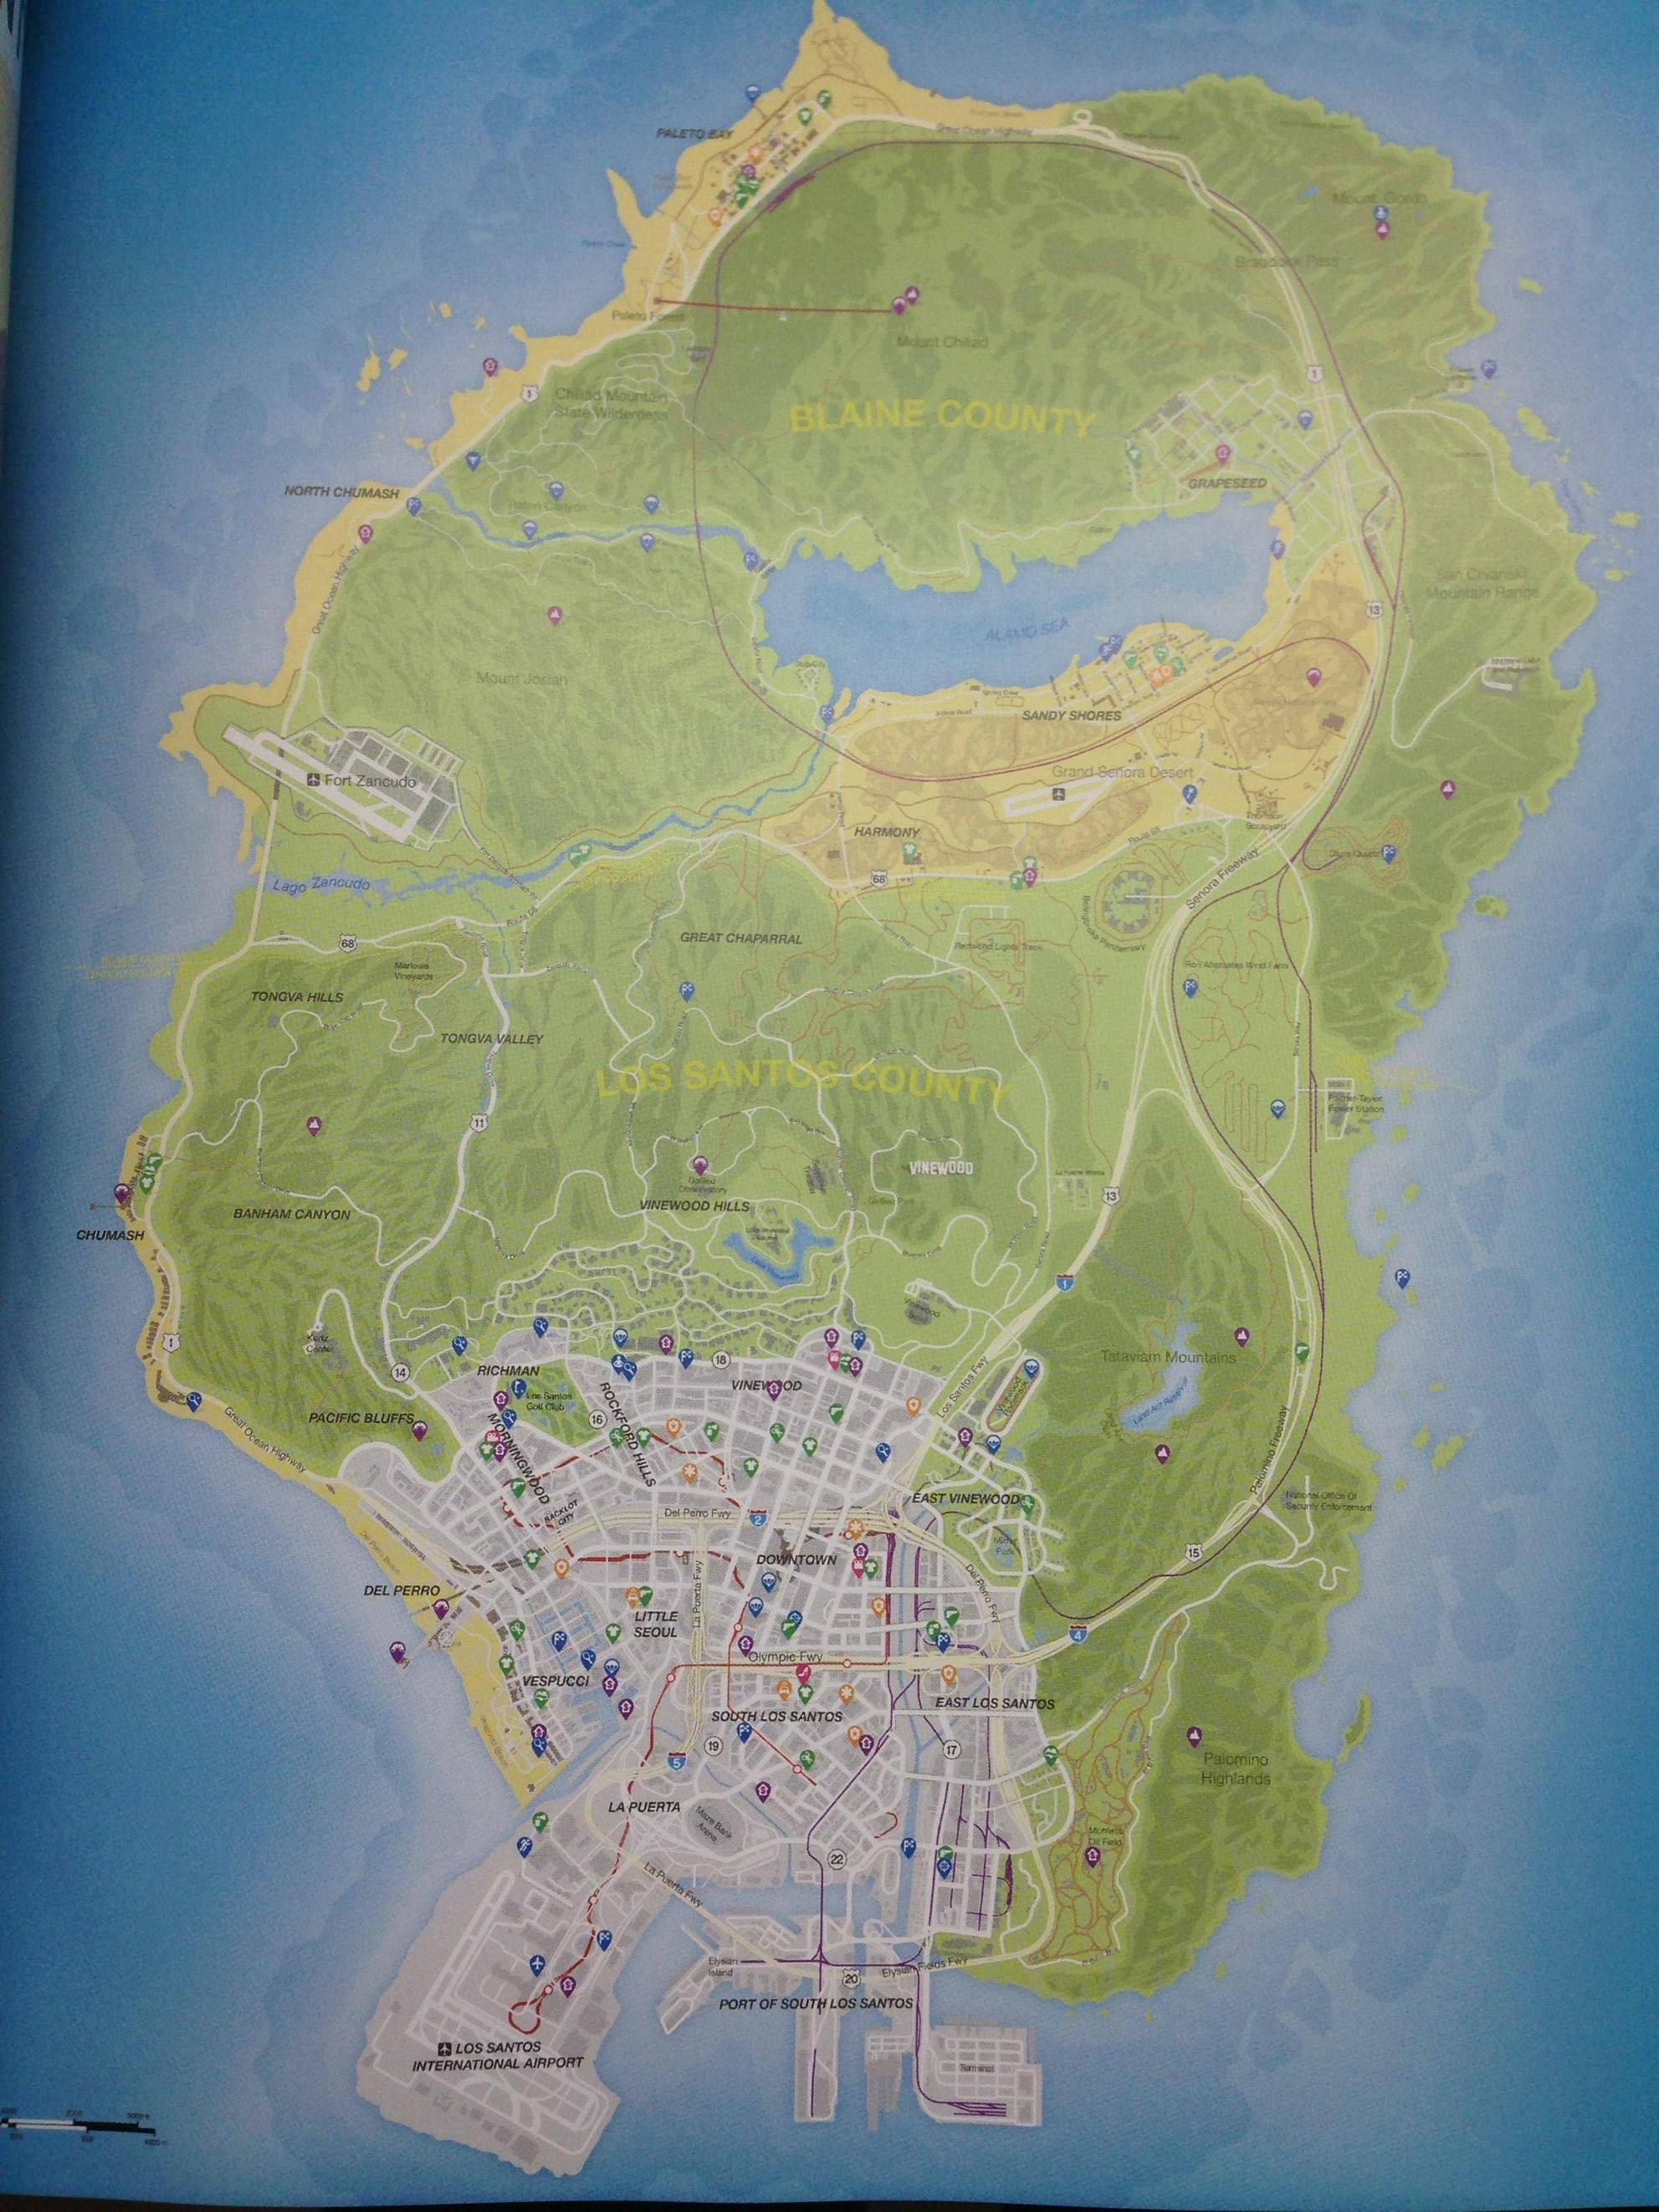 Gta V Map With Street Names : street, names, Santos